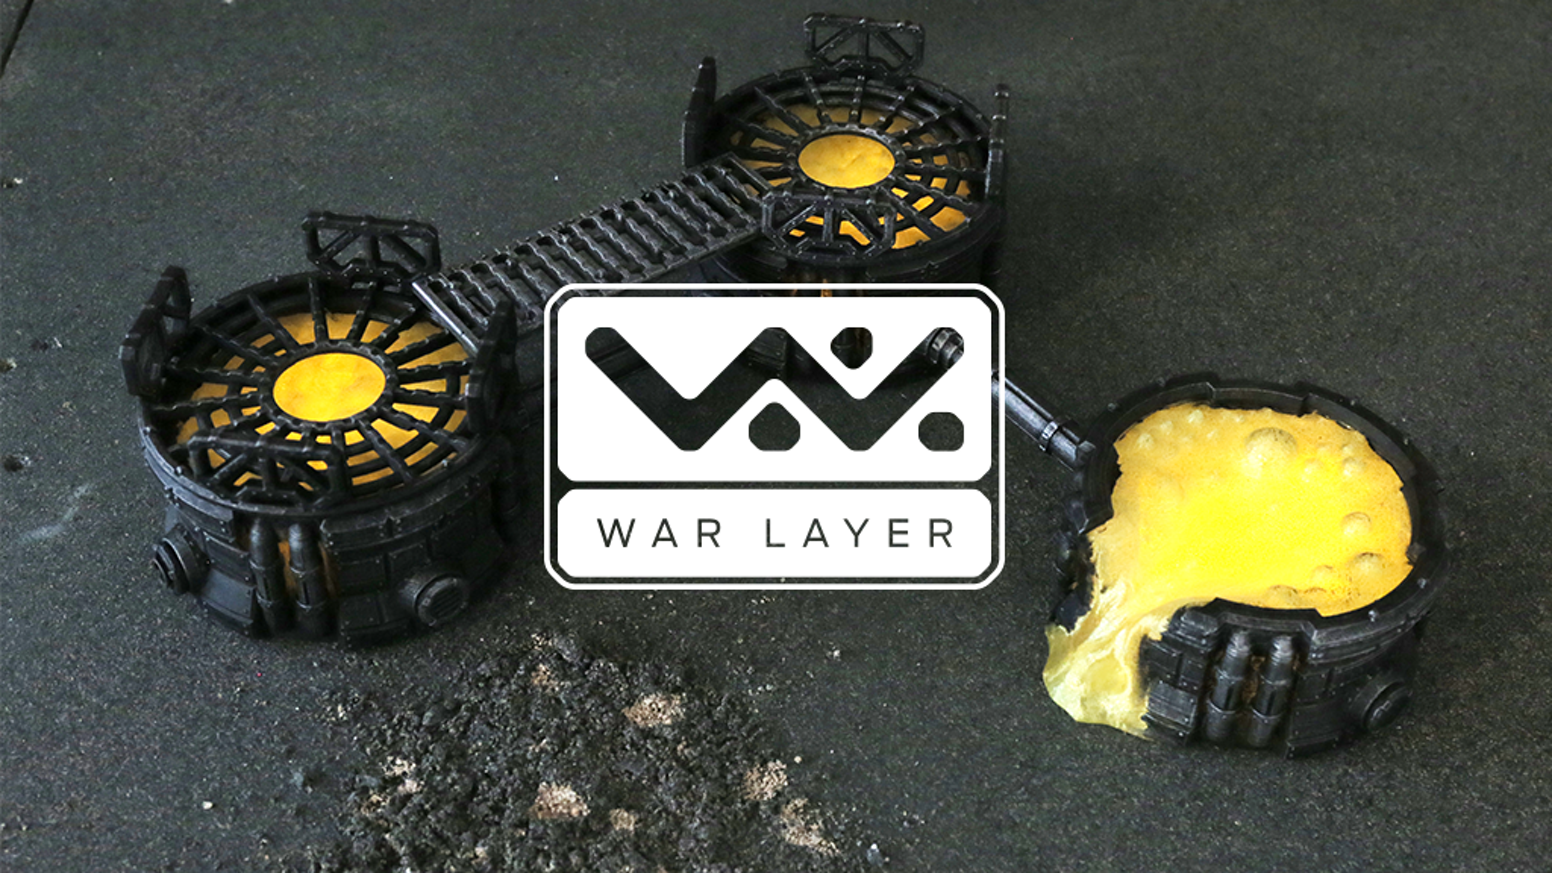 A new collection of Sci-Fi Wargaming terrain designed specifically for 3D printing. Easy prints with no support material required.